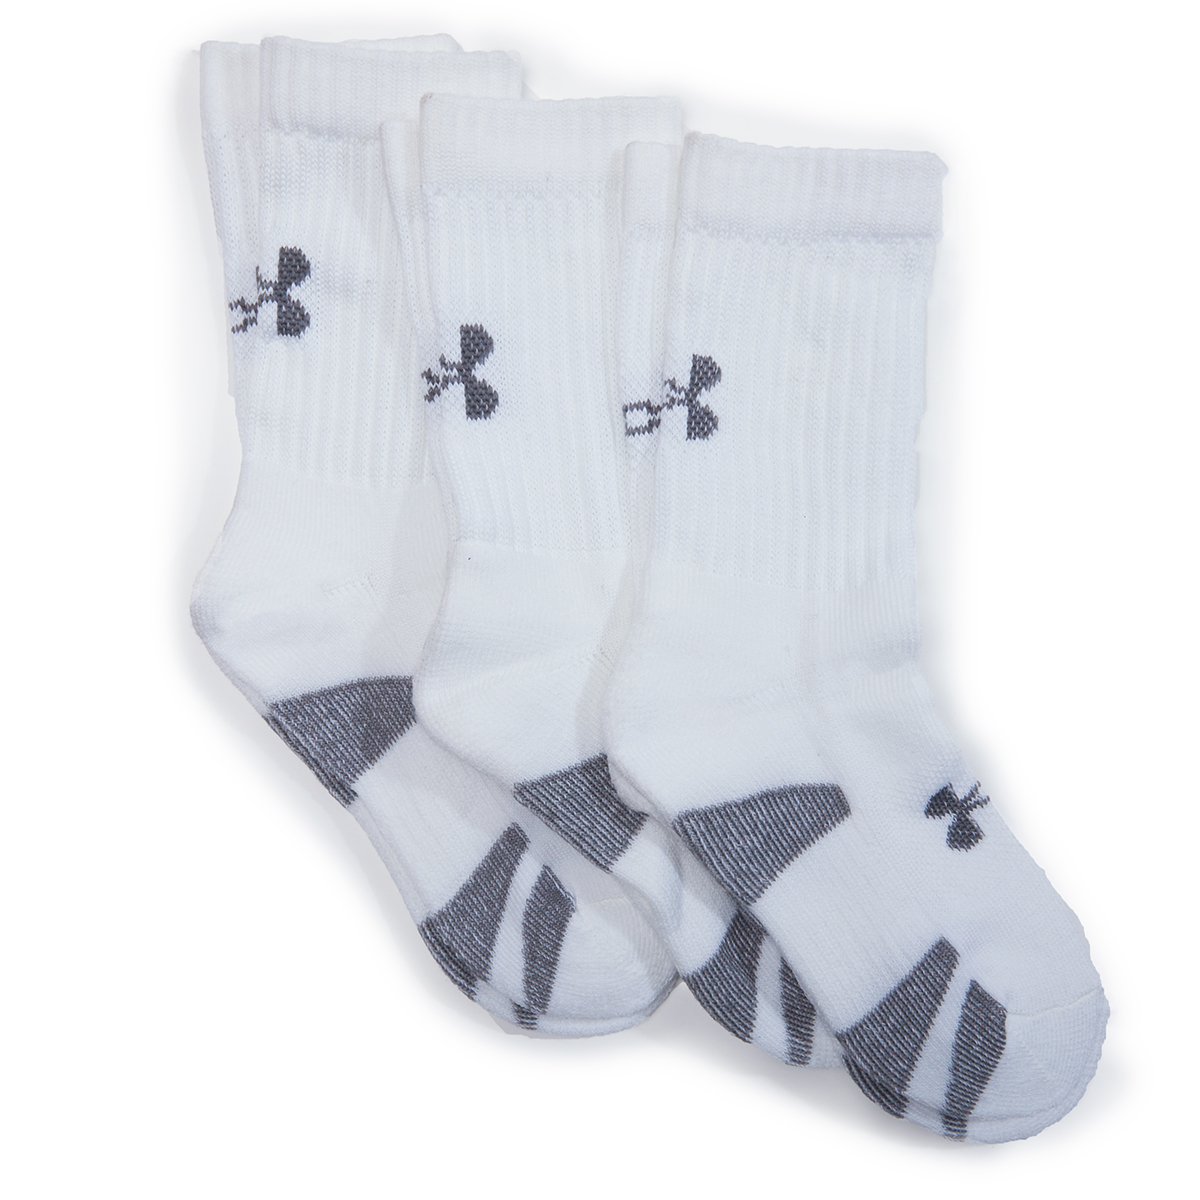 Under Armour Boys' Training Crew Socks, 3-Pack - White, L